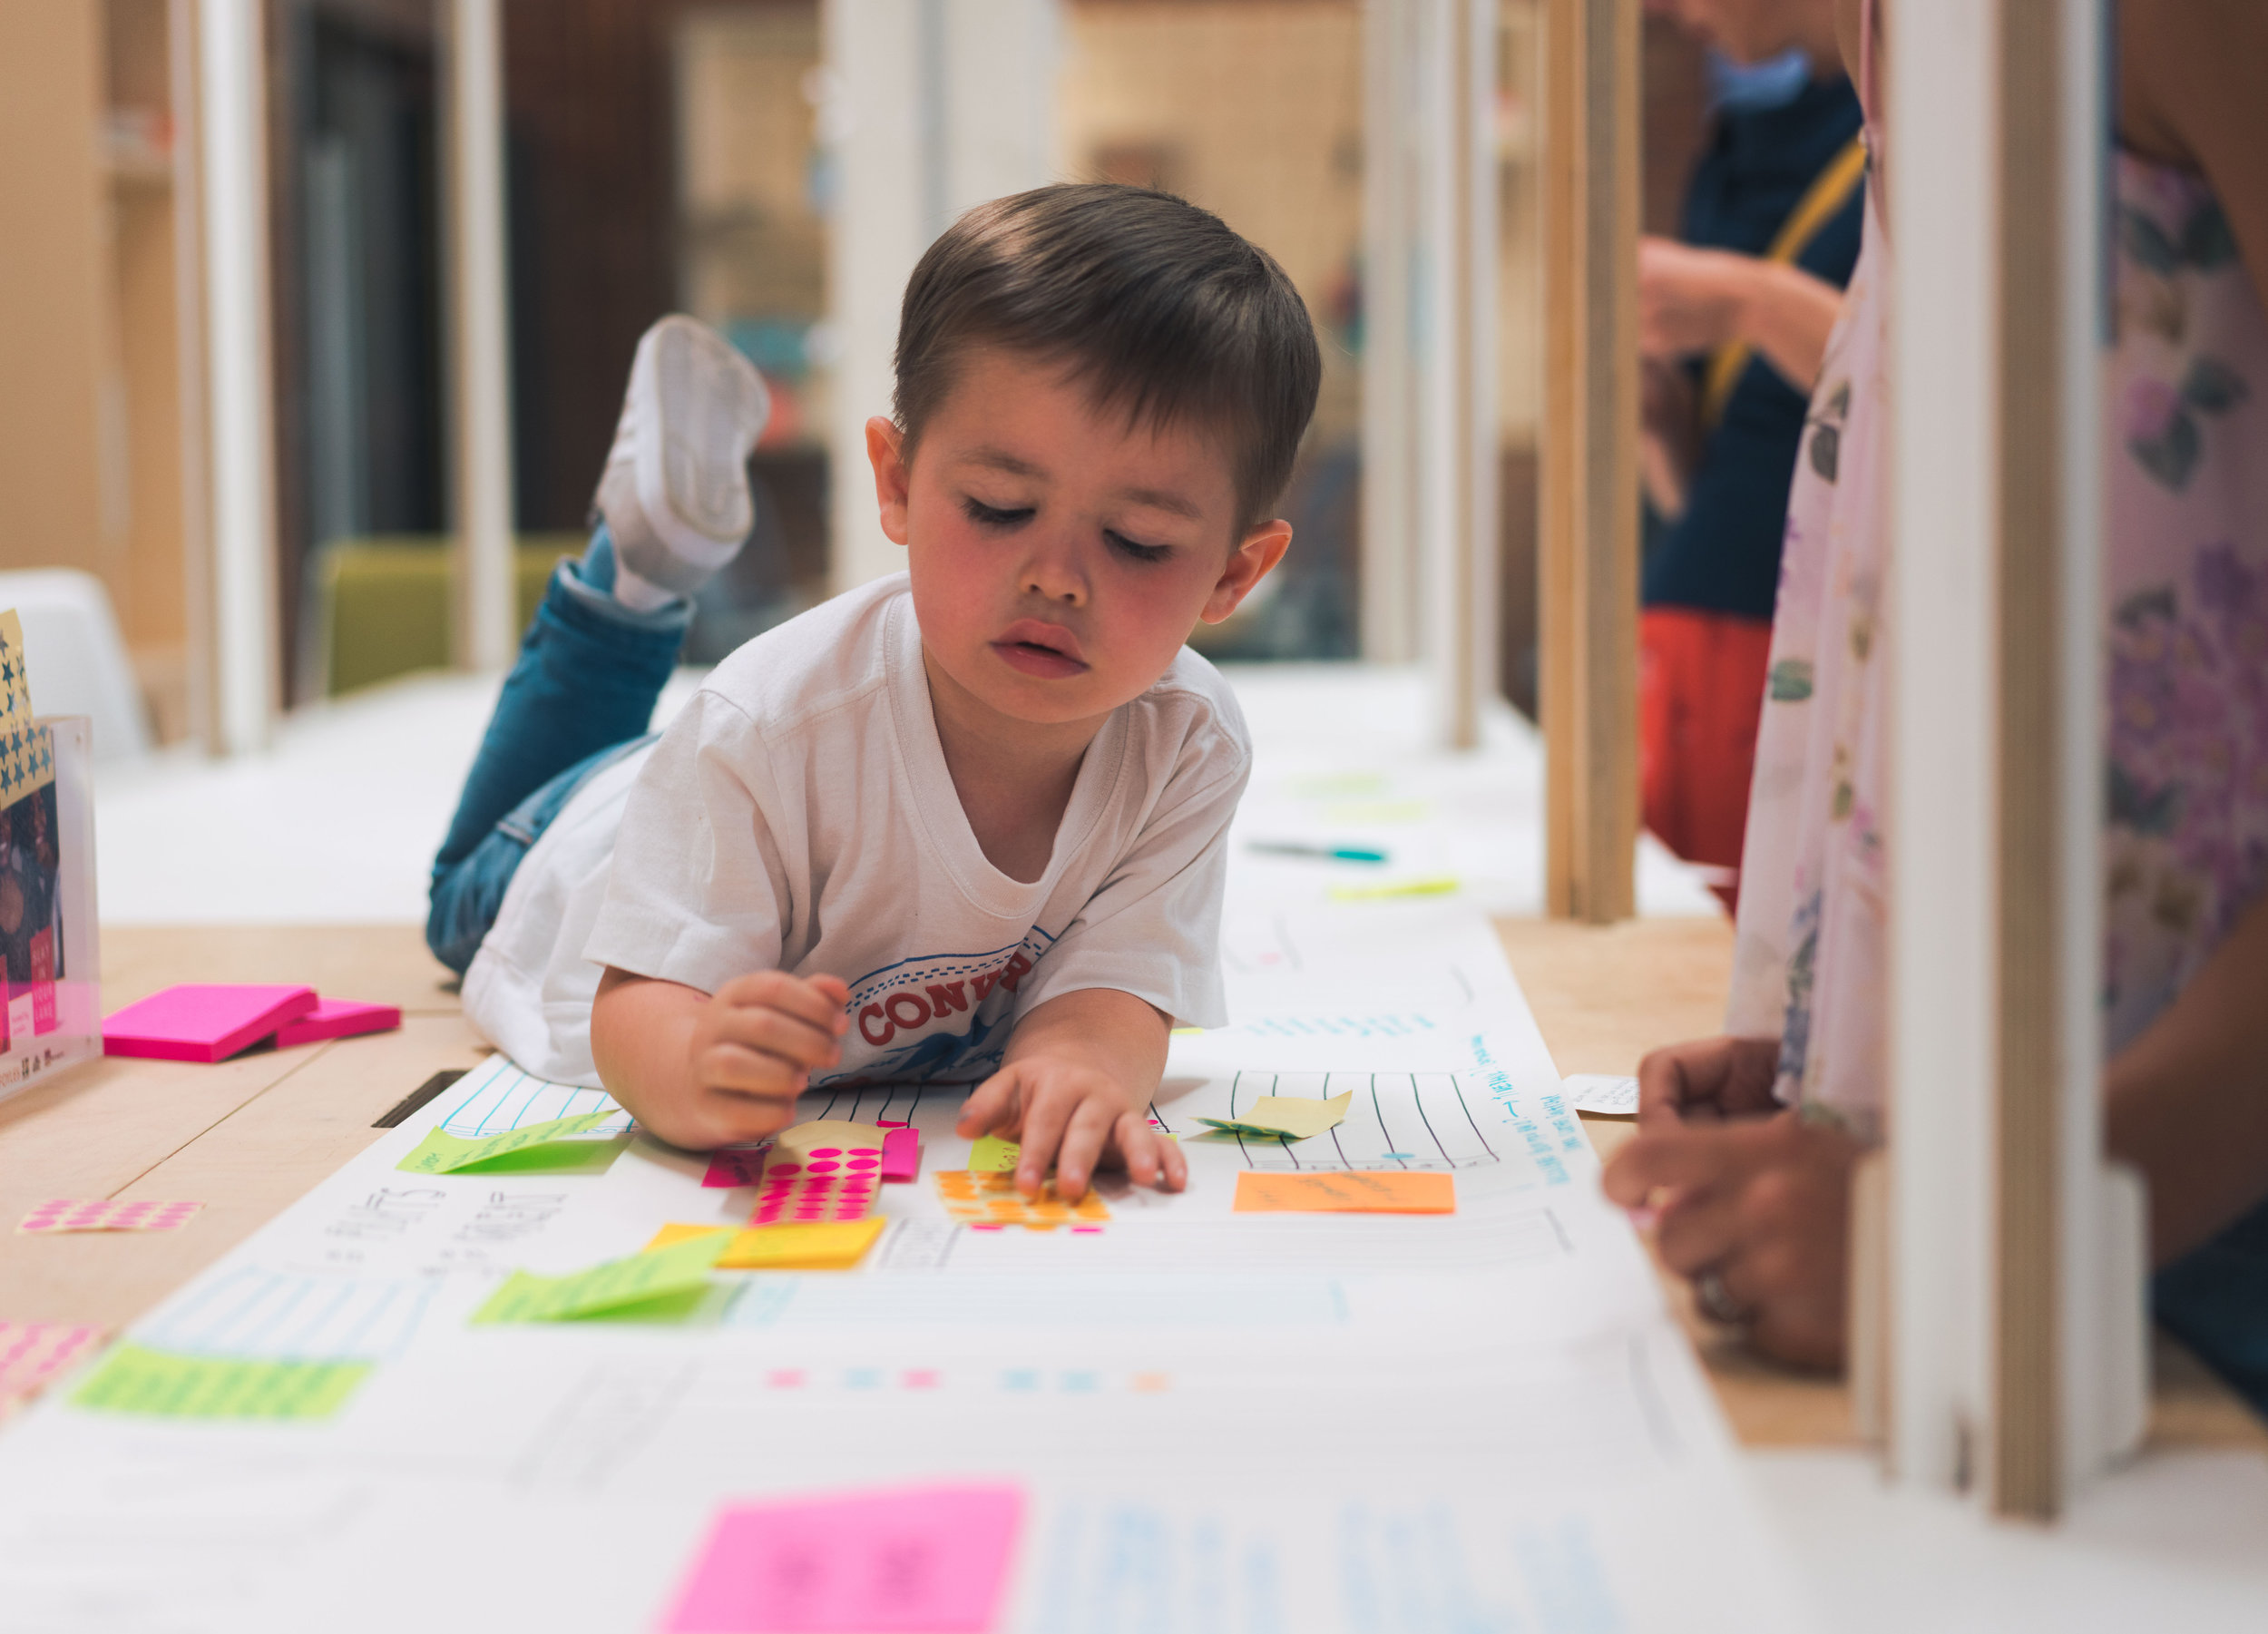 Children's Participatory Budgeting - Experiments in how can children be involved in decisions about public expenditure in ways that are effective, inclusive and impactful in their own cities and neighbourhoods. Inspired by Child in the City.